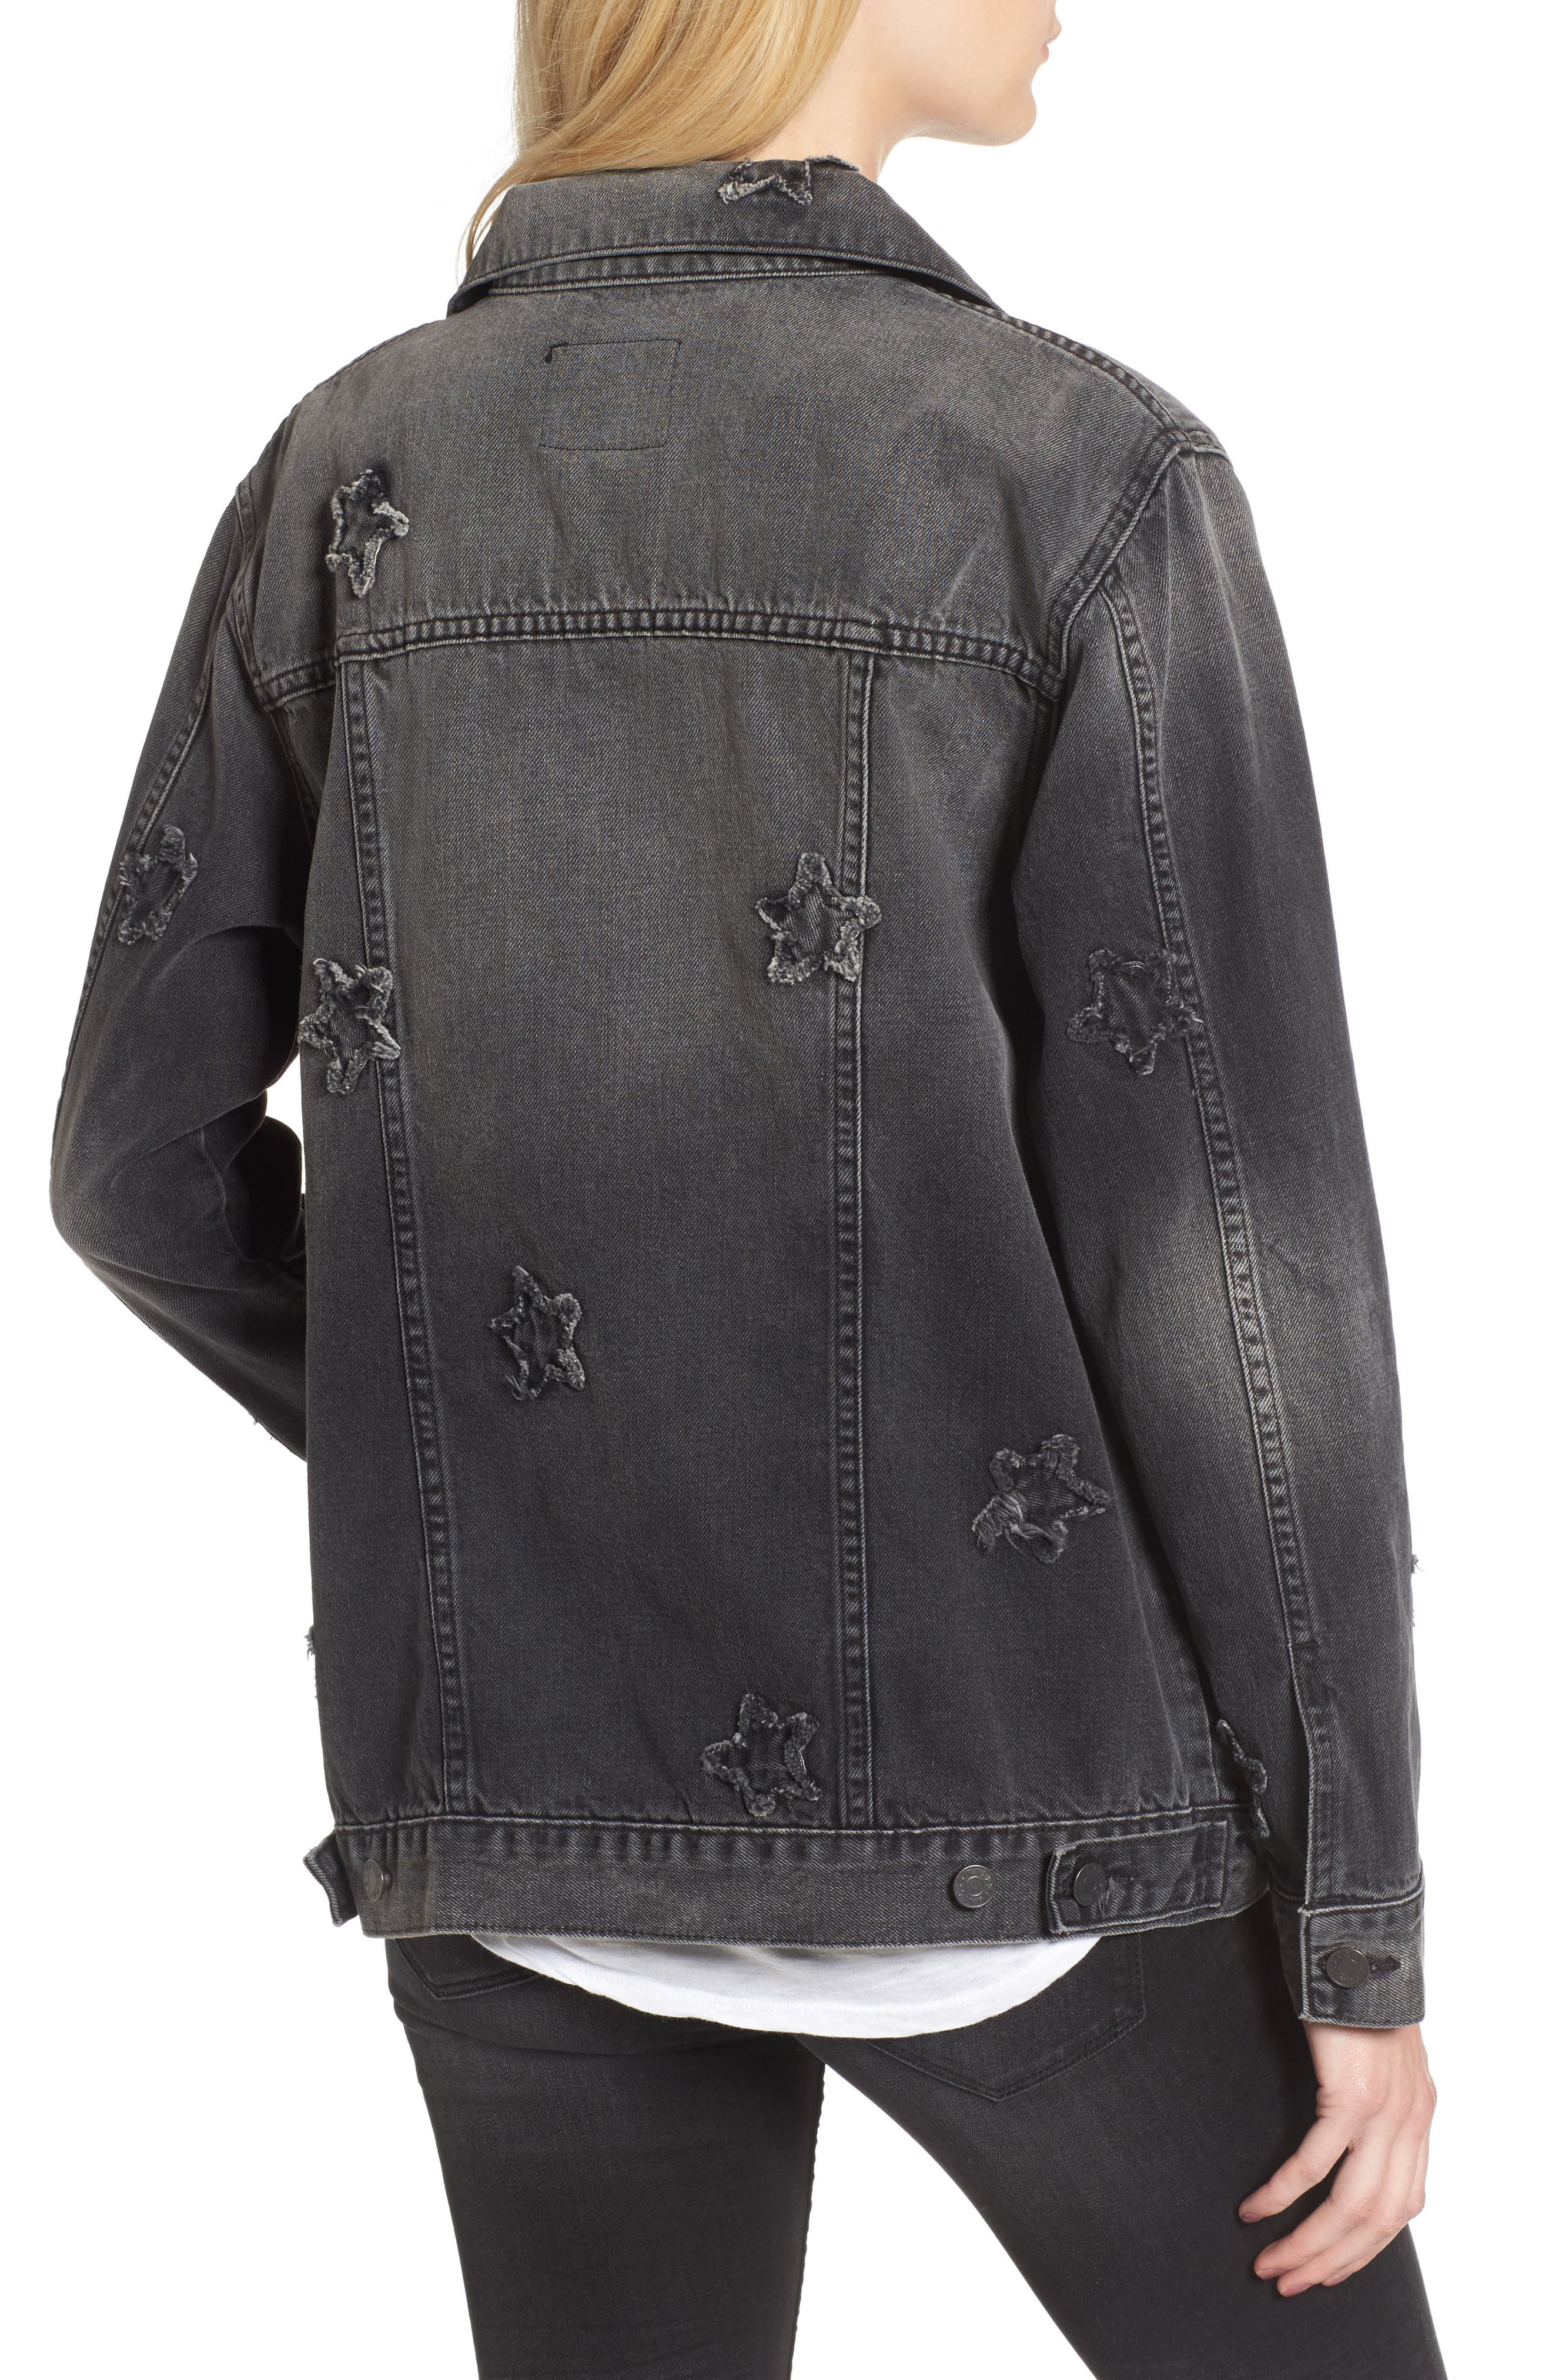 Knox Star Patch Denim Jacket,                             Alternate thumbnail 3, color,                             Vintage Black